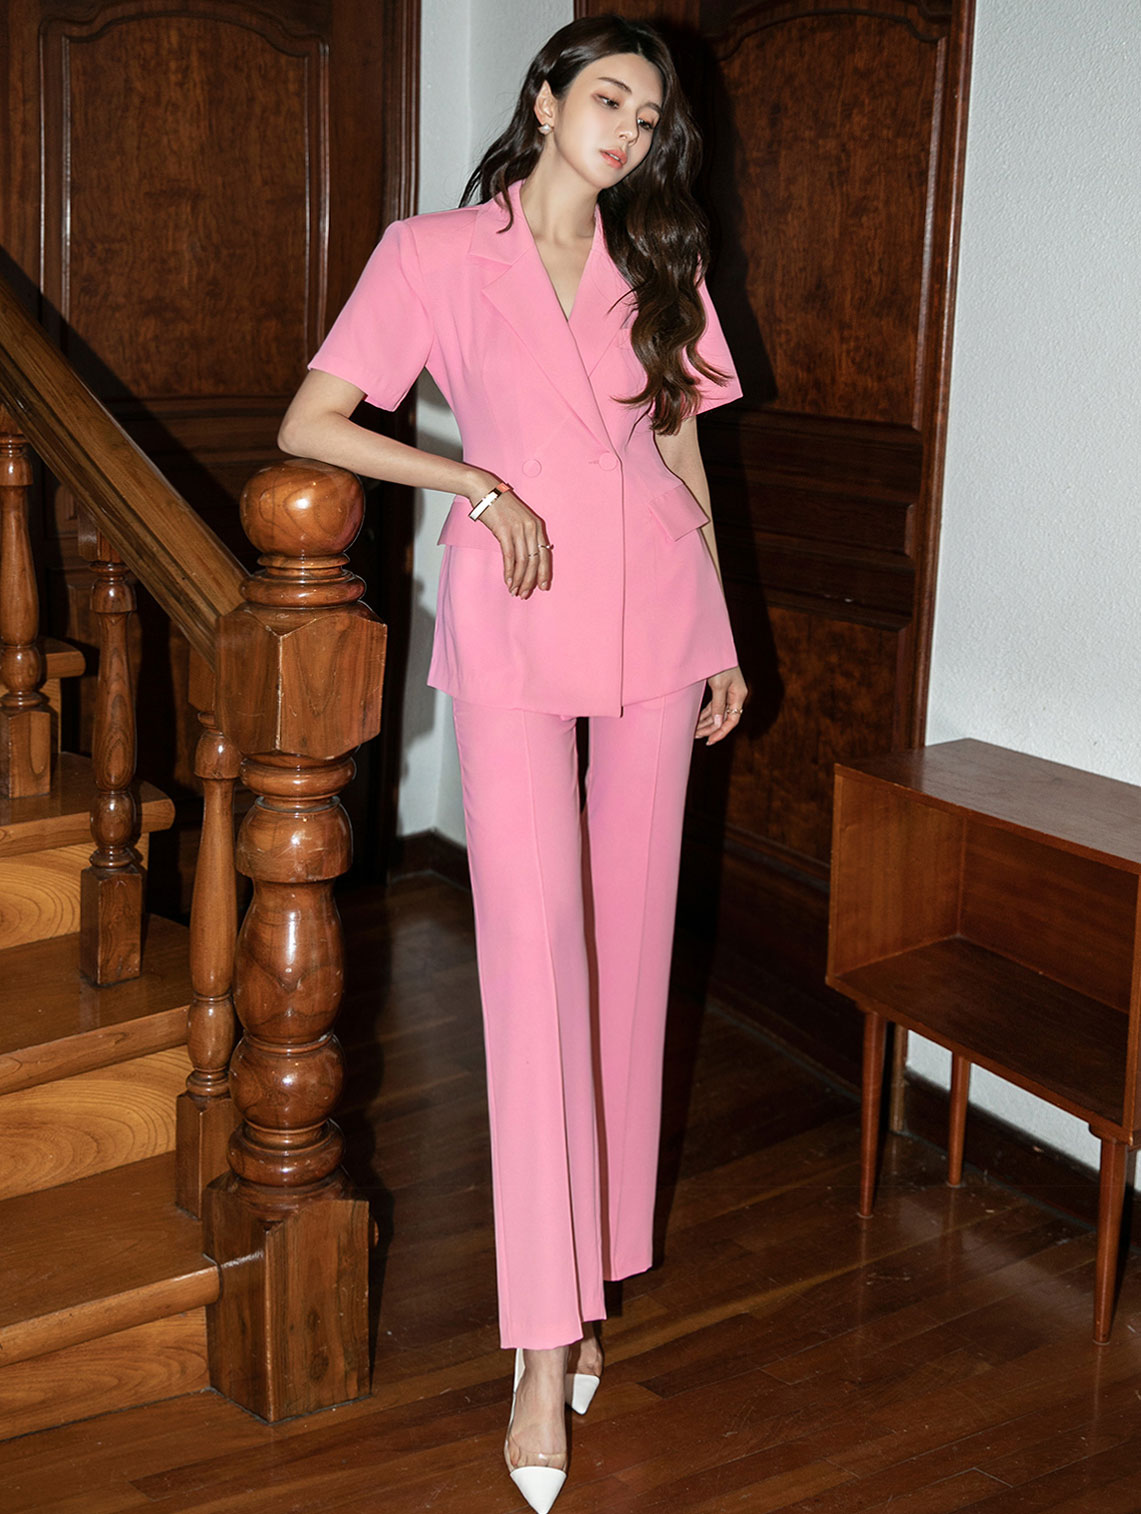 TP1092 그레 basic Double Button High Waist Suit(31st REORDER)